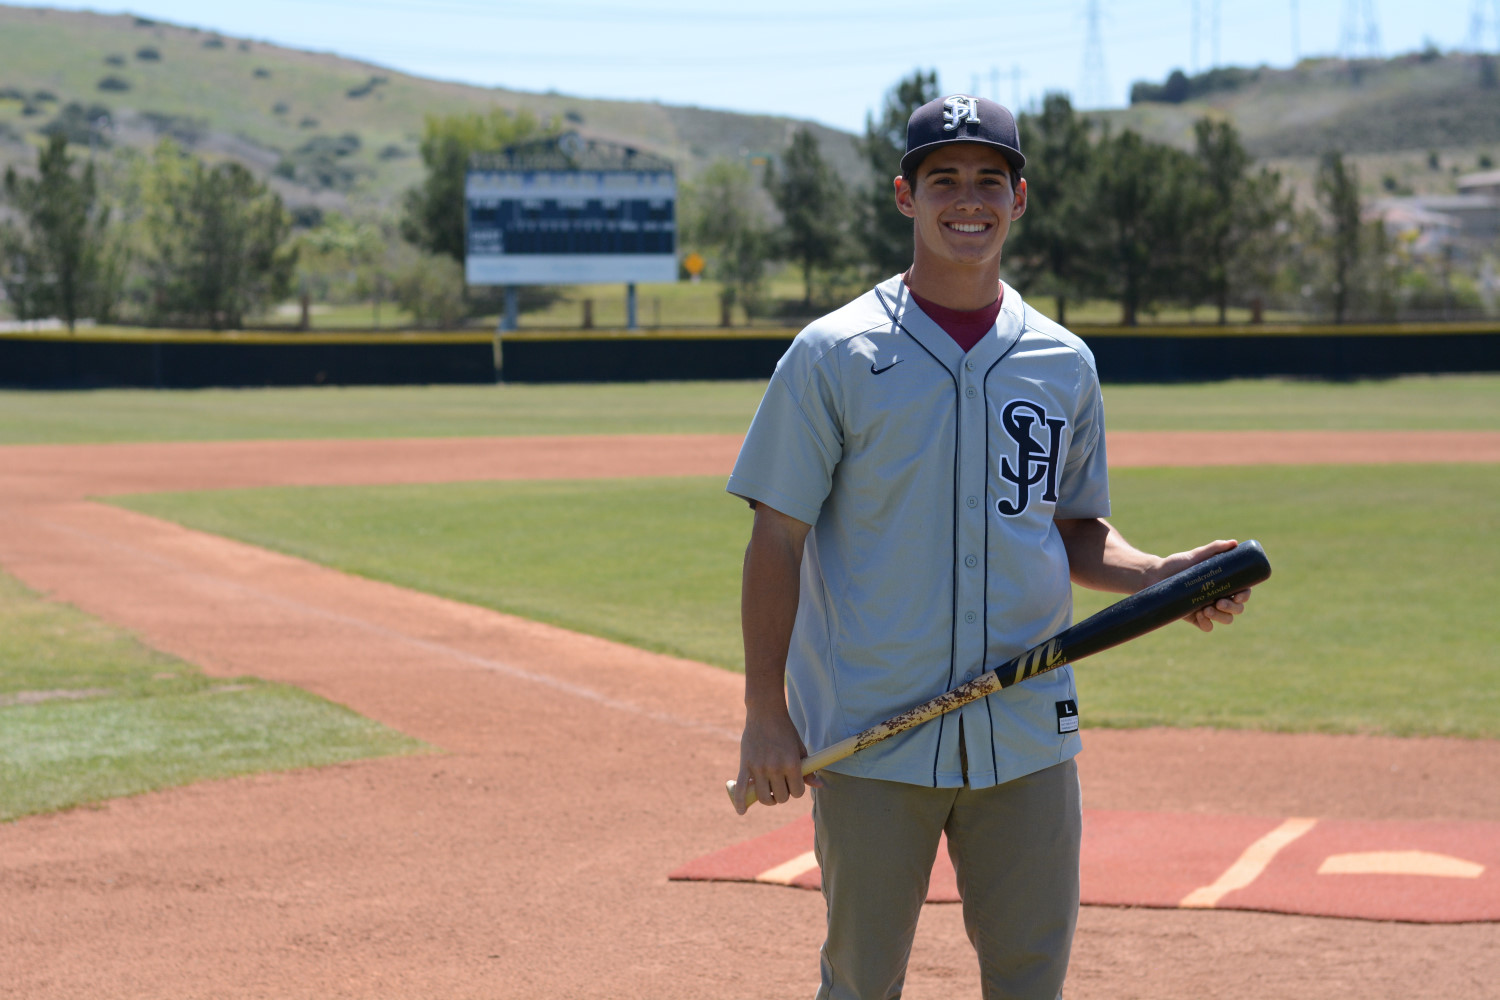 Liam O'Connor stands in the SJHHS baseball field while wearing his Stallion baseball uniform.